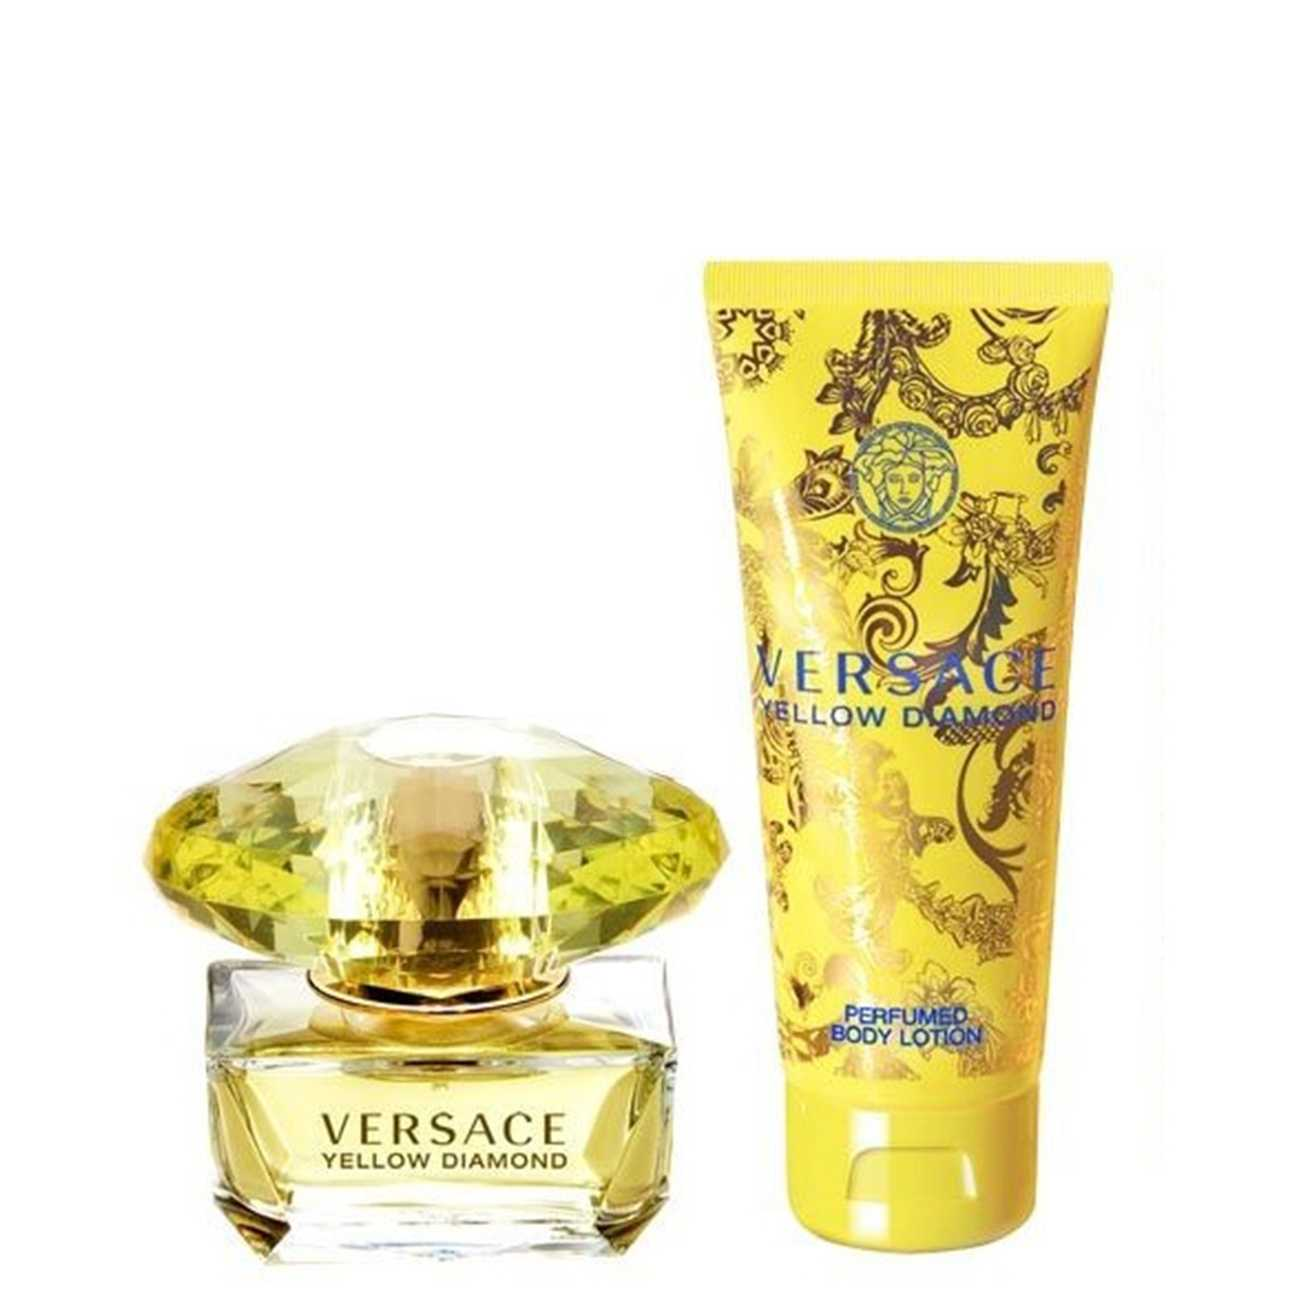 YELLOW DIAMOND 150 ML 150ml